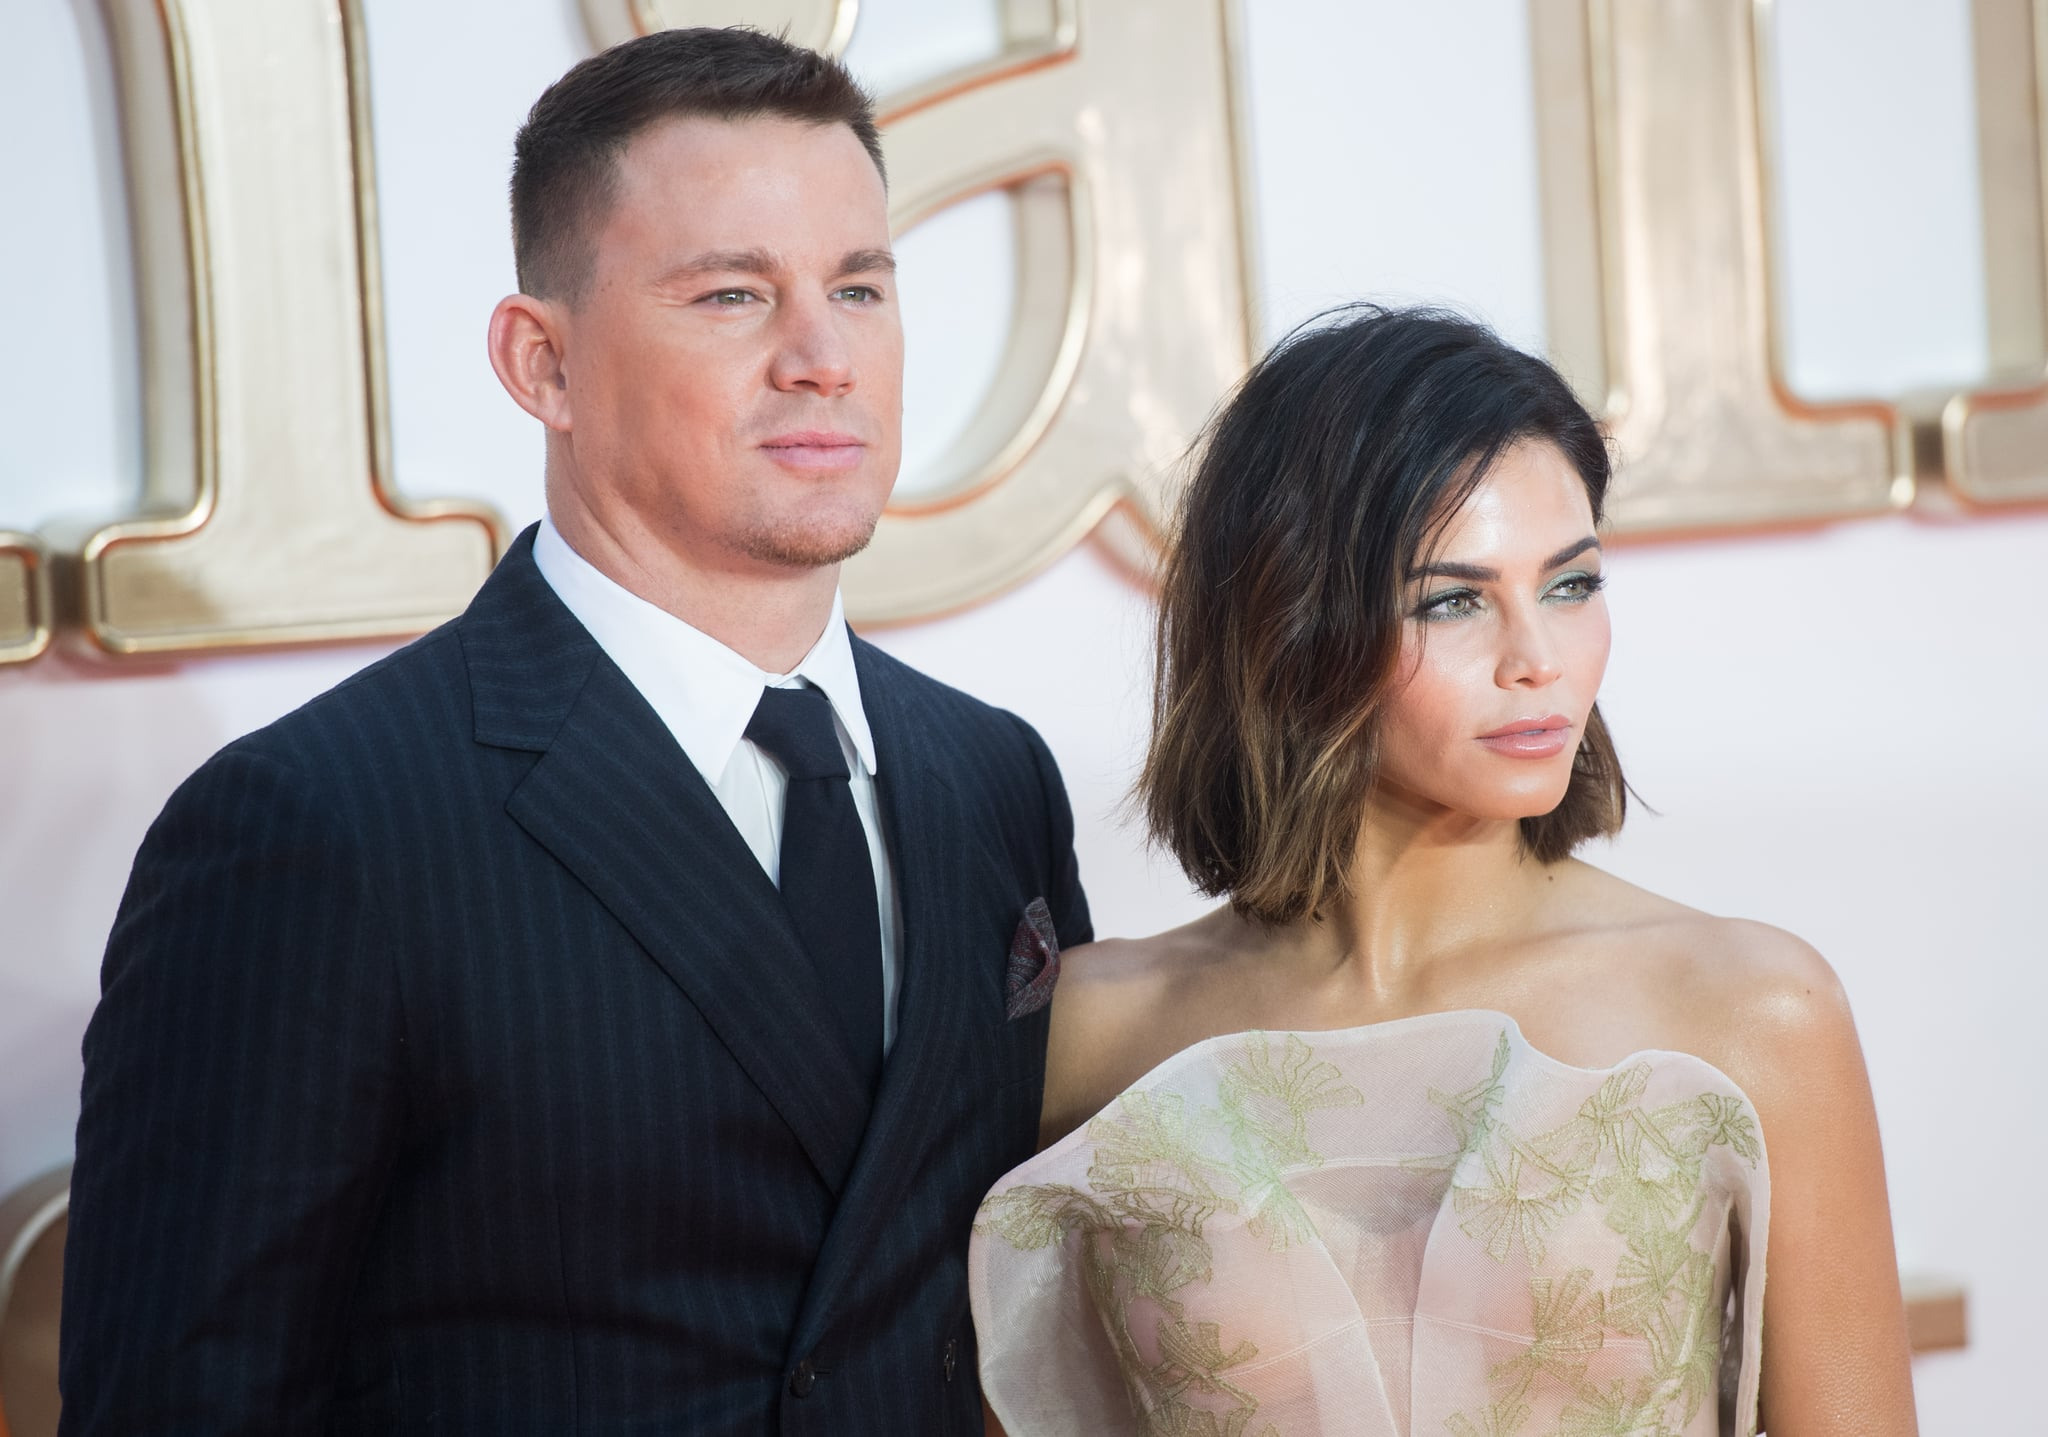 LONDON, ENGLAND - SEPTEMBER 18:  Channing Tatum and Jenna Dewan Tatum attends the 'Kingsman: The Golden Circle' World Premiere held at Odeon Leicester Square on September 18, 2017 in London, England.  (Photo by Samir Hussein/WireImage)